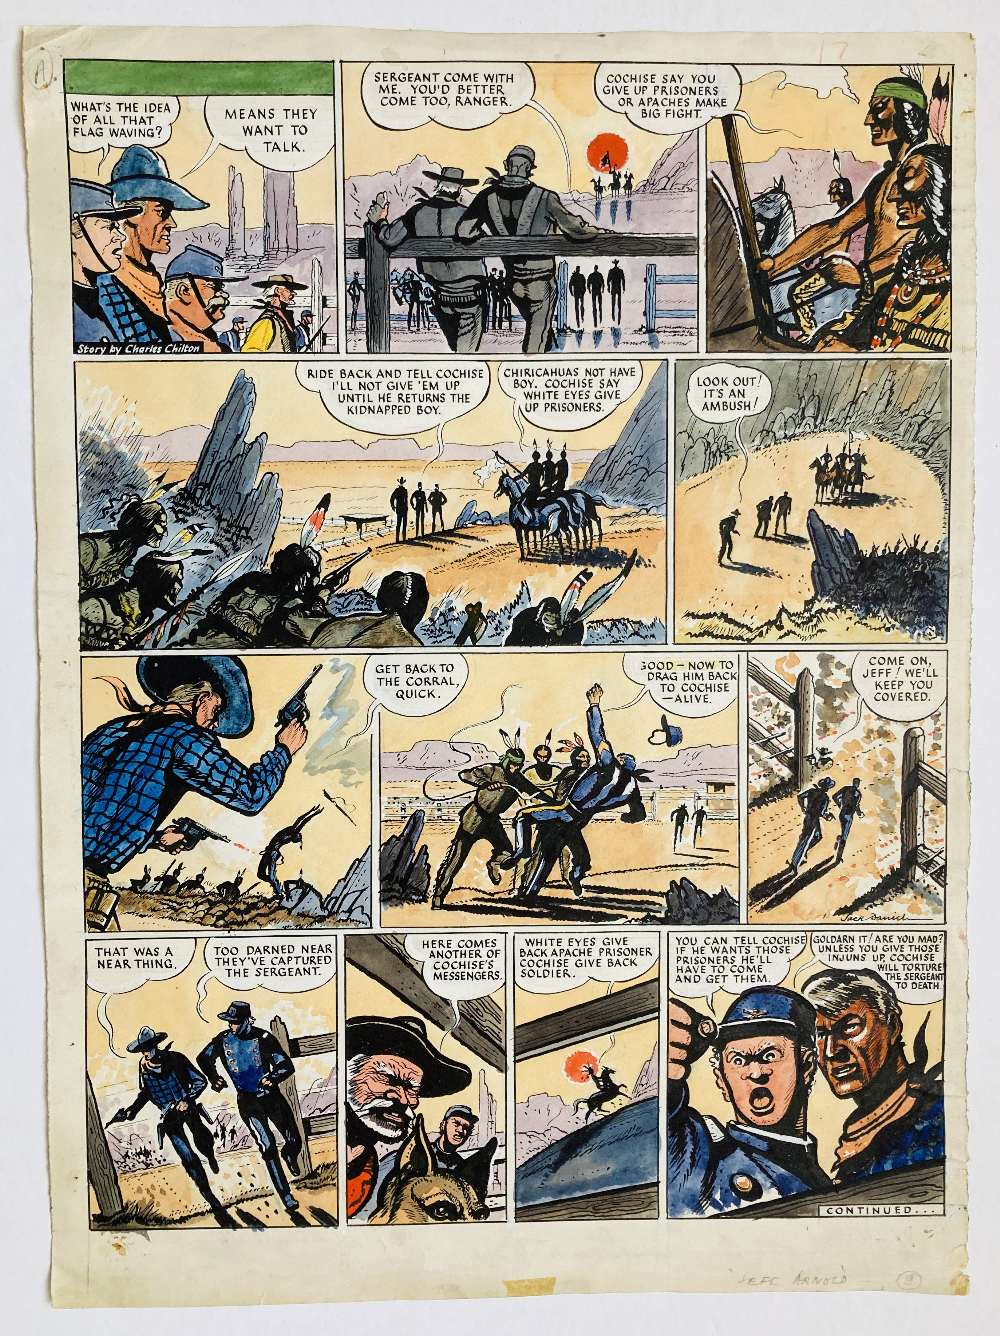 Lot 33 - Riders of the Range original artwork drawn, painted and signed by Jack Daniel for The Eagle (1950-